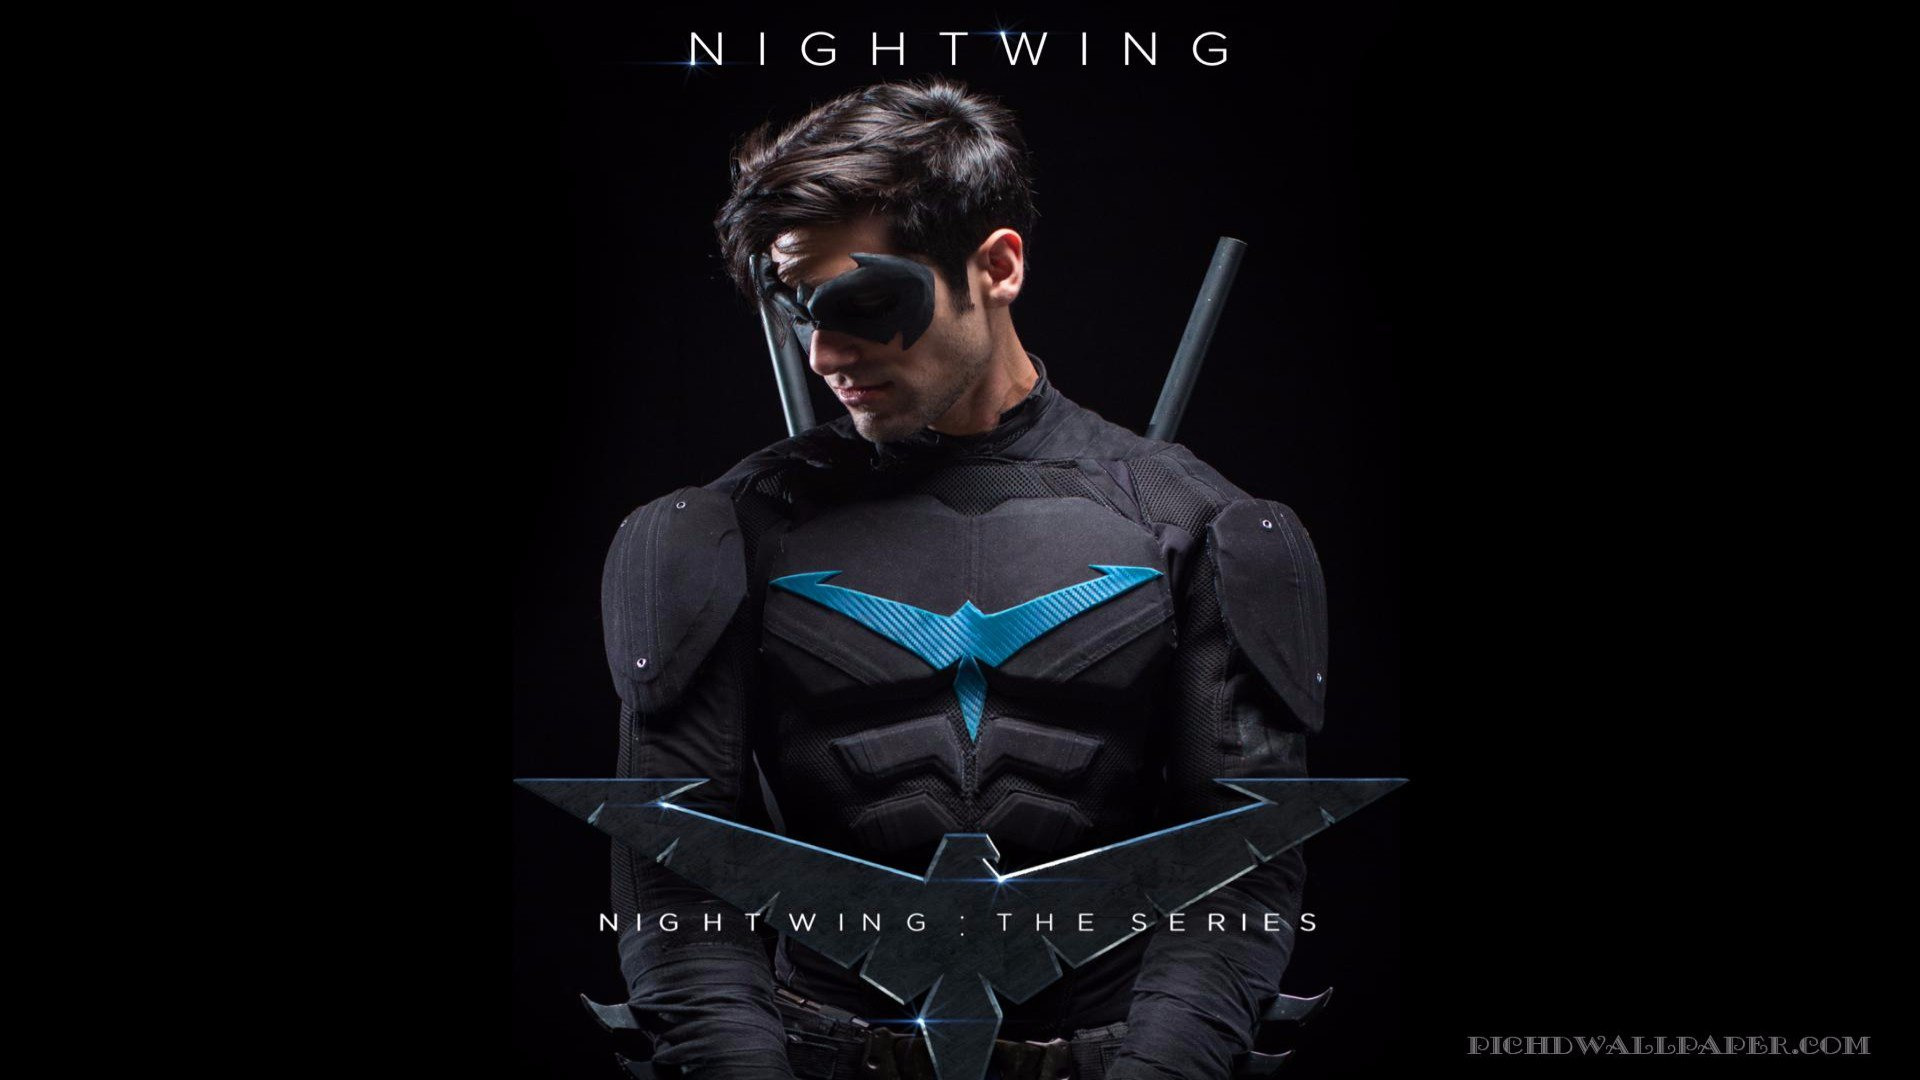 Show Nightwing: The Series